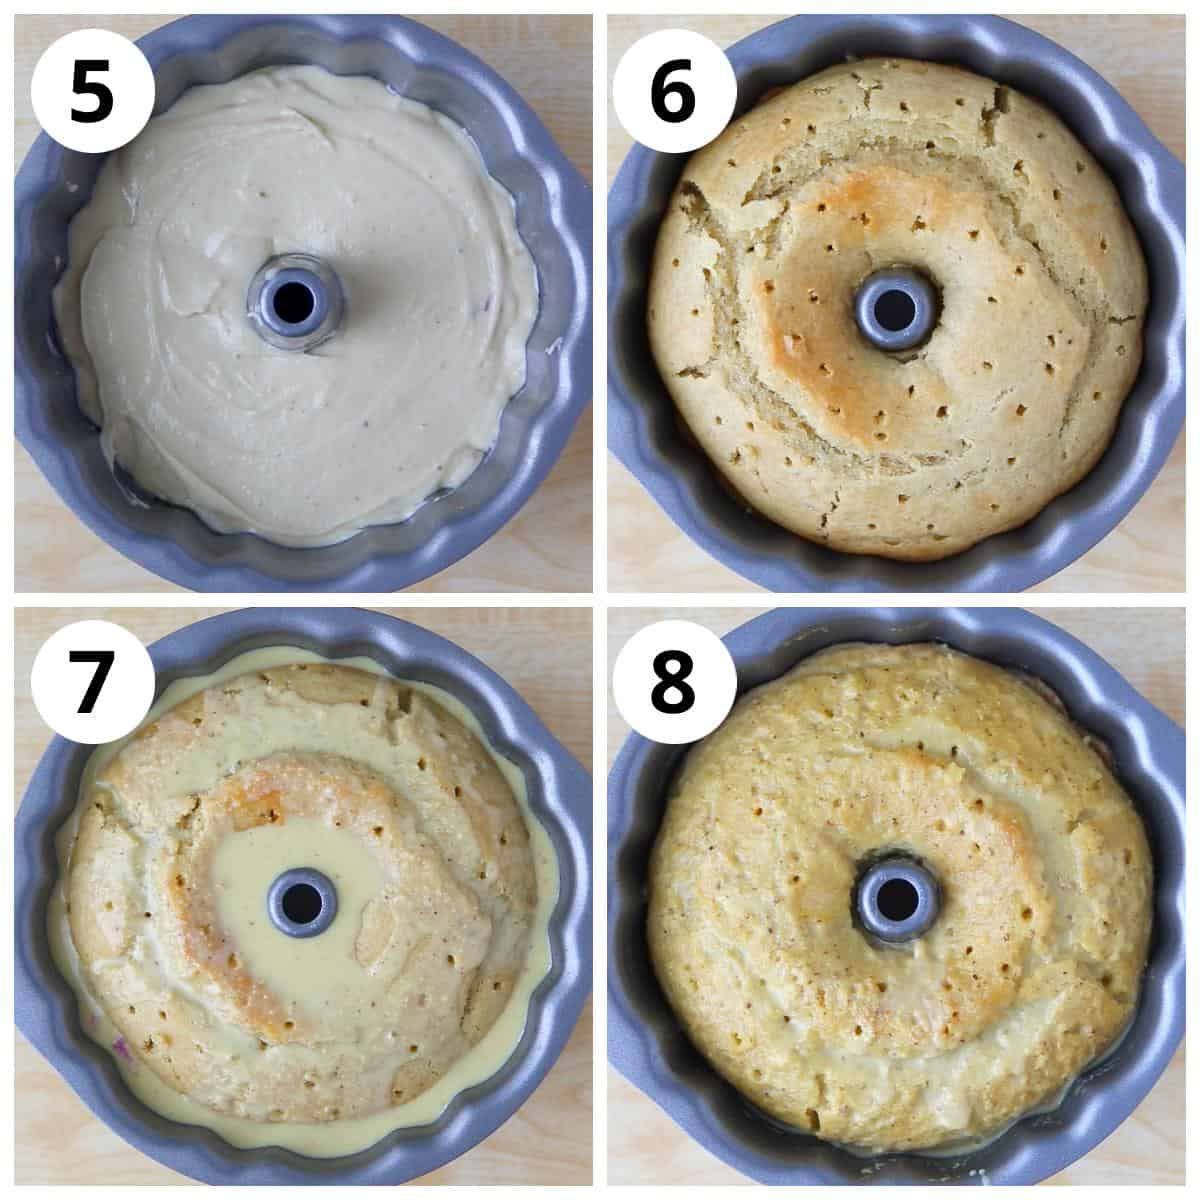 Steps for baking the thandai cake and soaking it in thandai